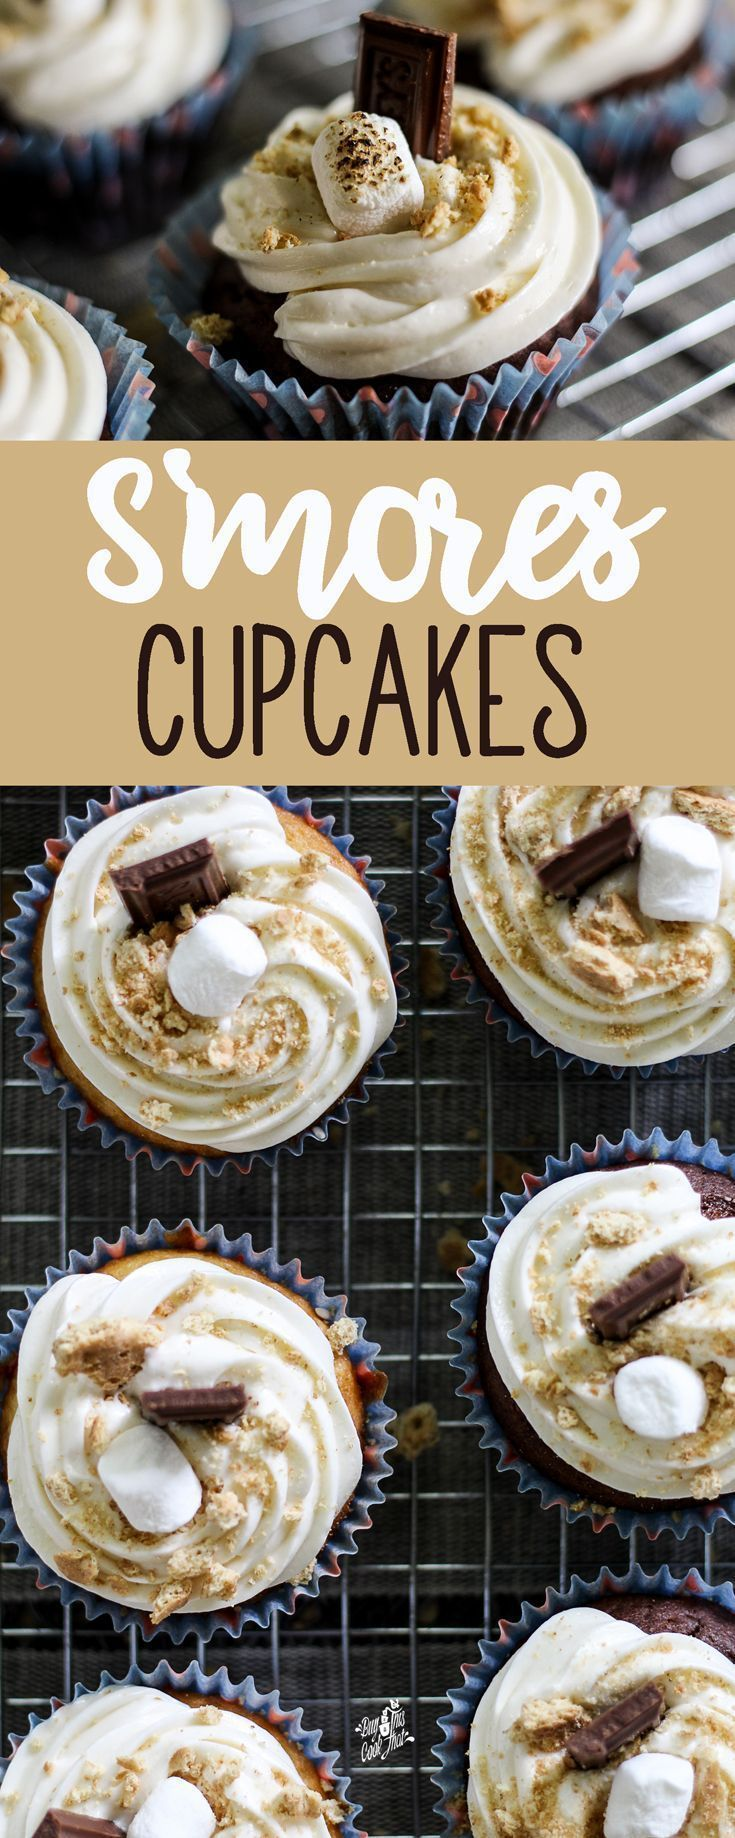 Welcome to Camp Cupcake. This fun and easy Smores Cupcake recipe will be a hit at your next party.     Made with classic s'mores ingredients : graham crackers, marshmallows and milk chocolate. ...how can you go wrong?  You can't!    #smoresrecipes #smores